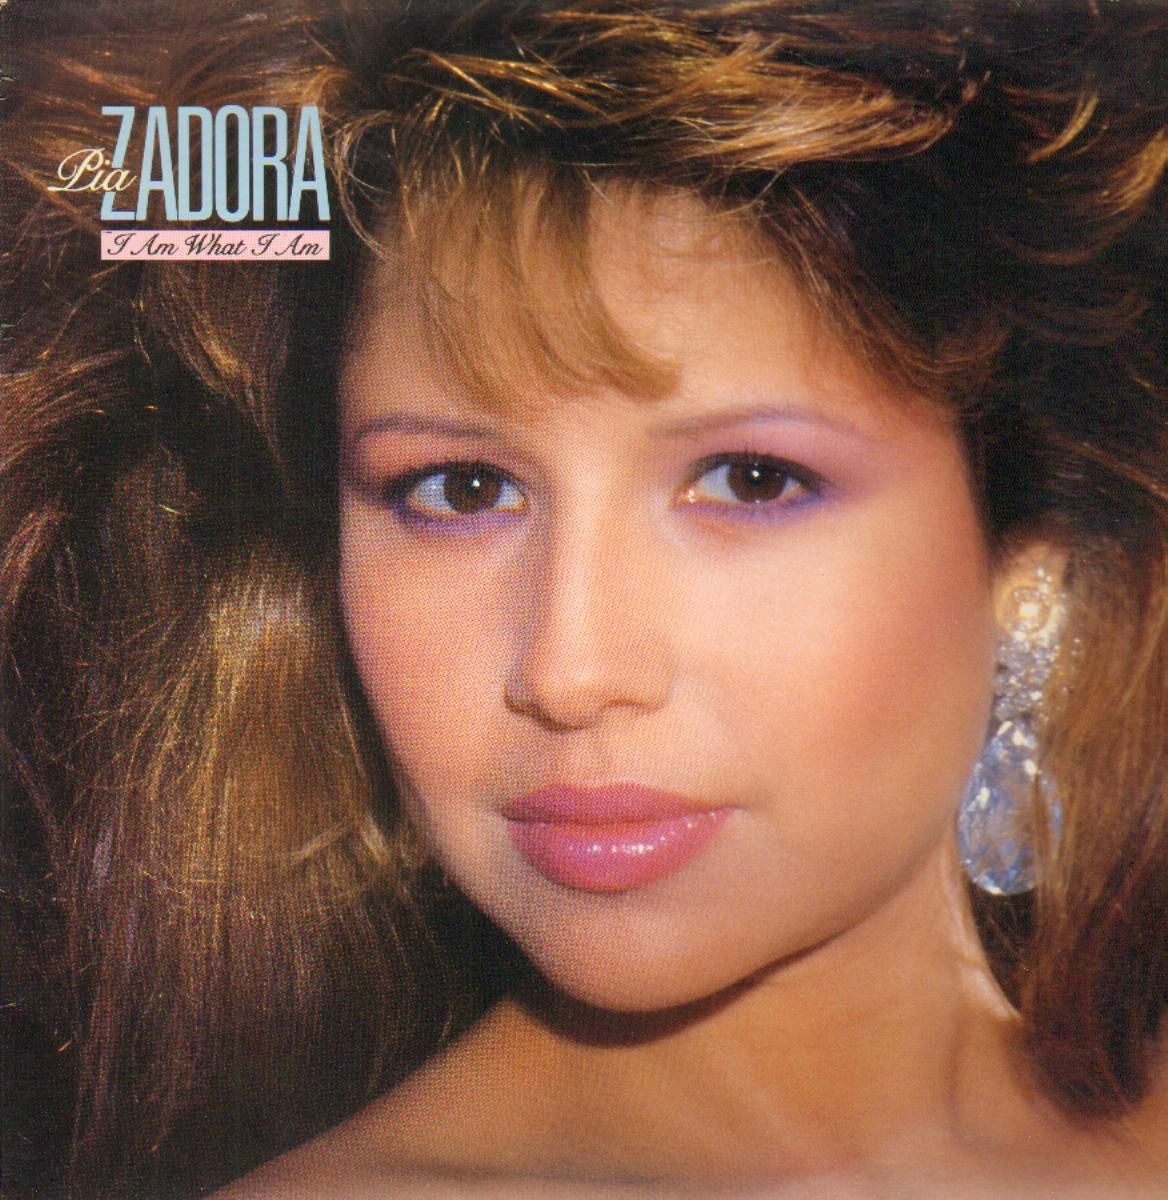 pia zadora i'm in love again